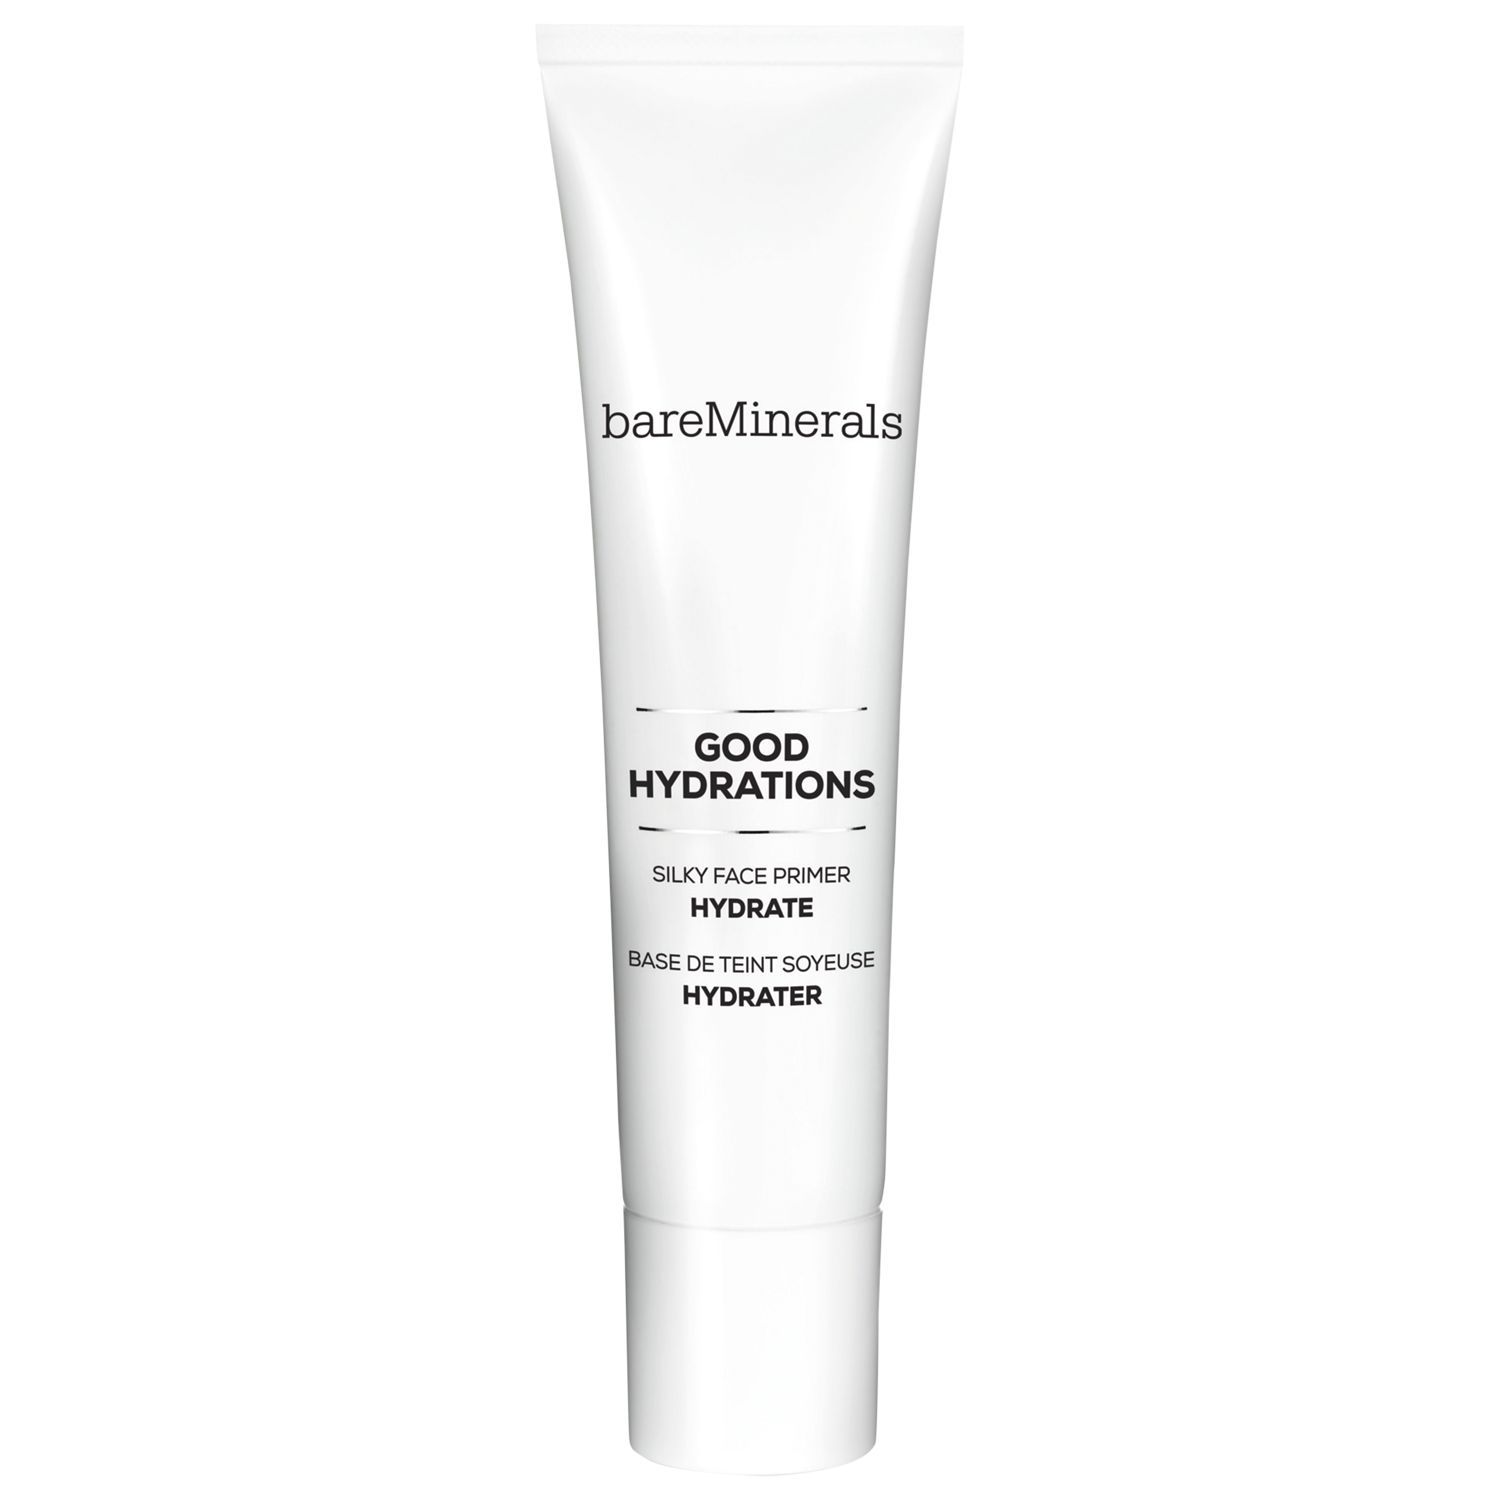 bareMinerals bareMinerals Good Hydrations Silky Face Primer, 30ml